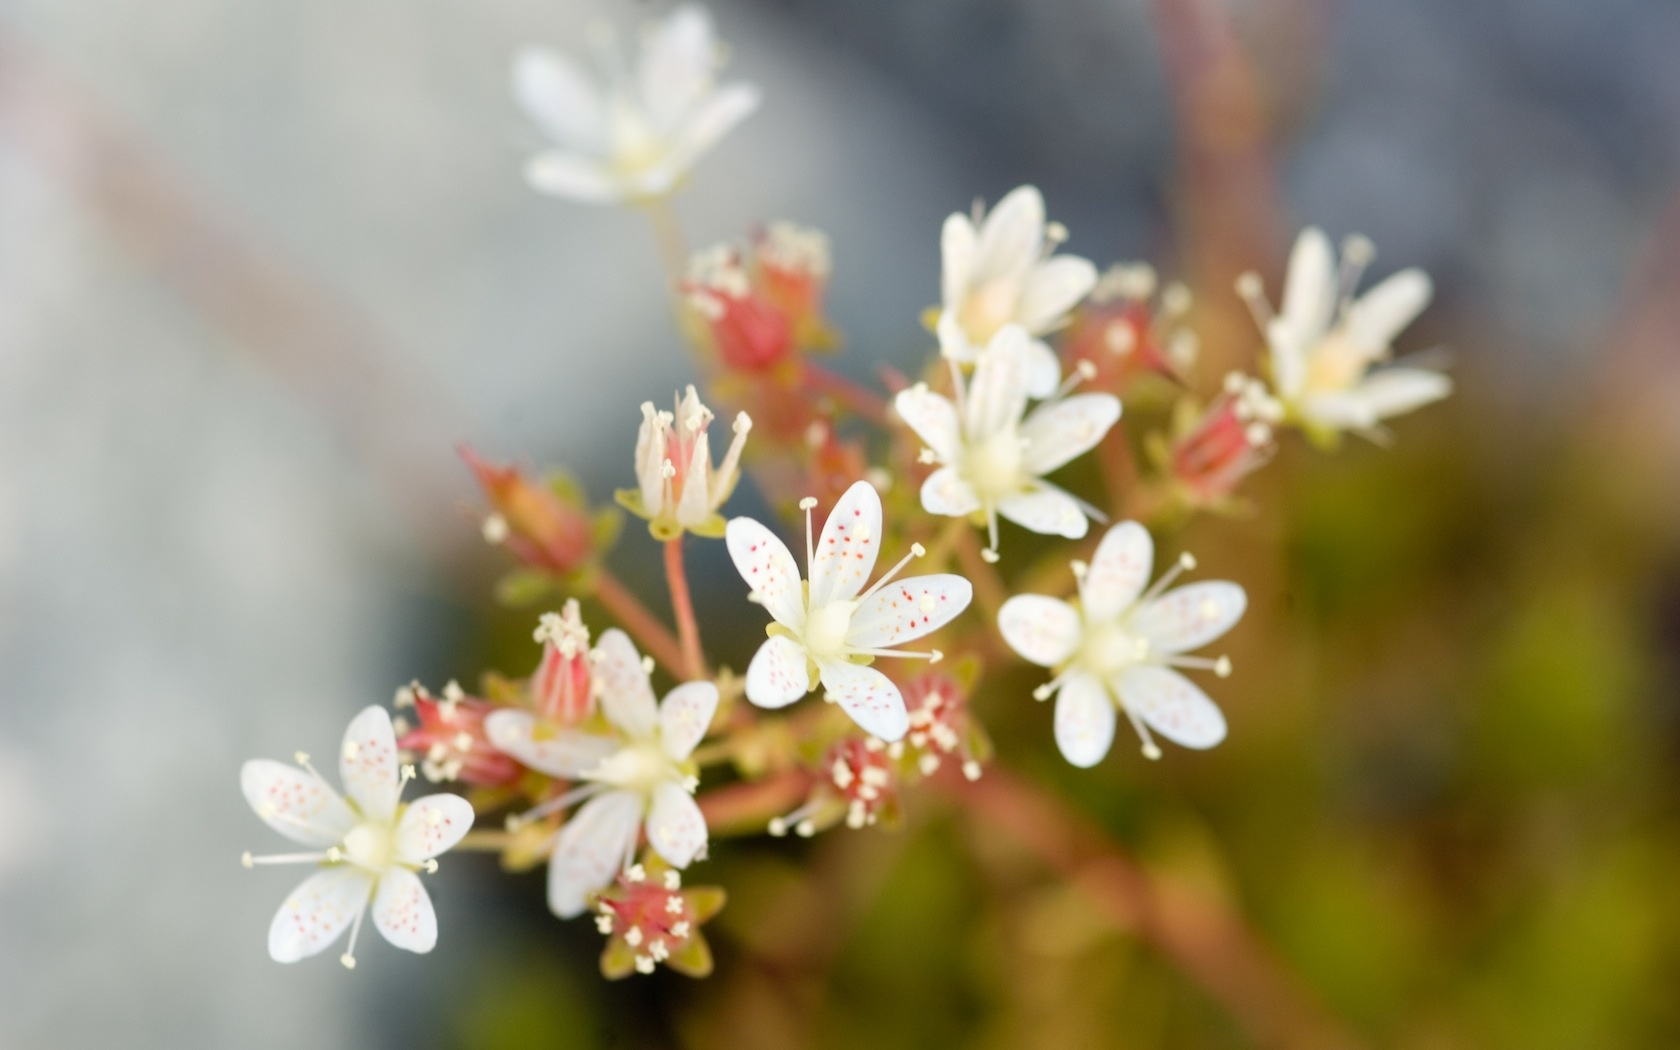 Wallpaper white flowers macro photography 1680x1050 hd picture image whiteflowersmacrophotography original resolution 1680x1050 download this wallpaper mightylinksfo